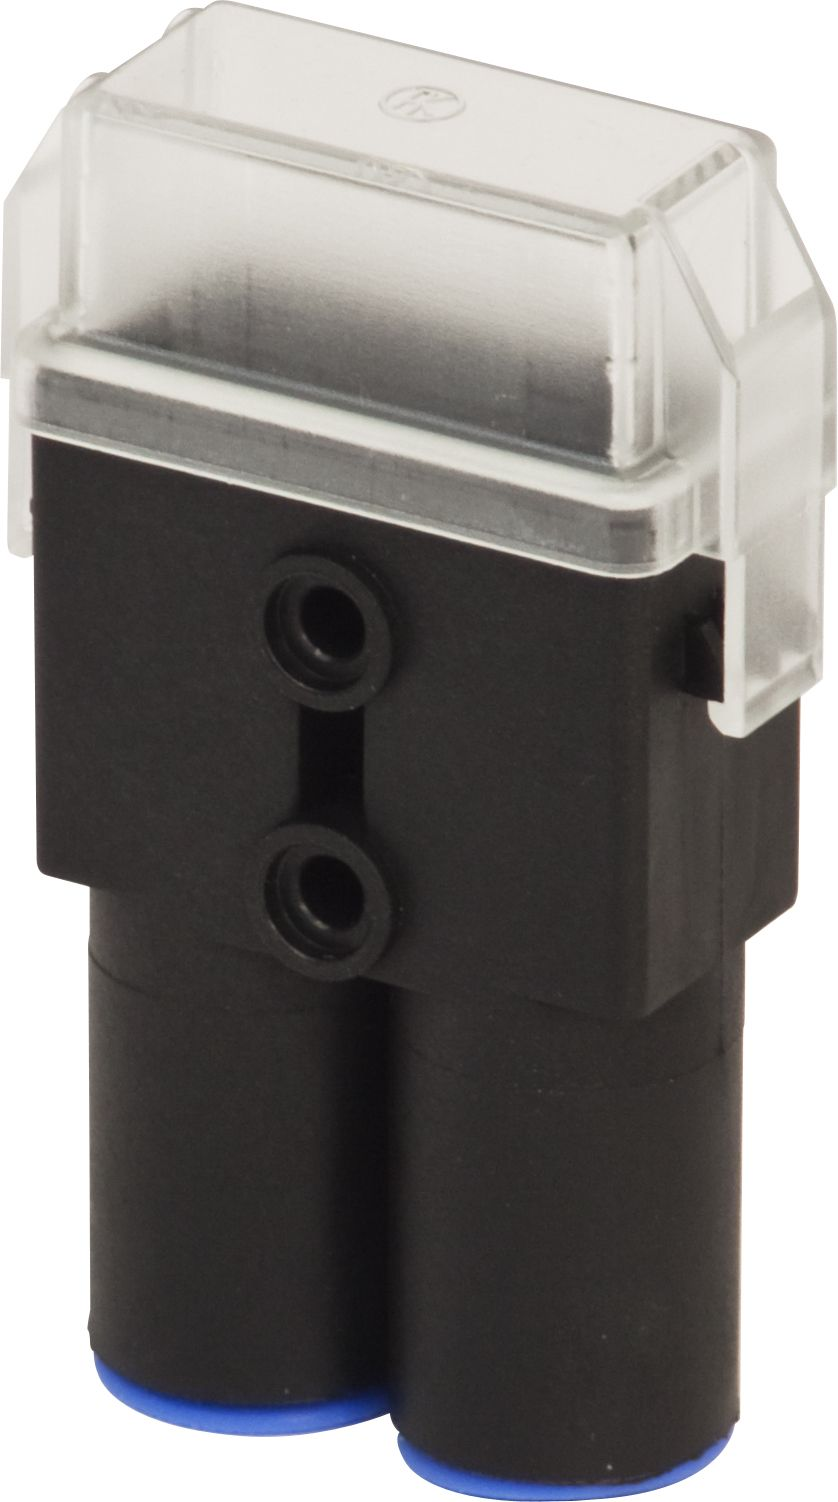 Littelfuse Maxi Fuse Holder Splash Proof Box